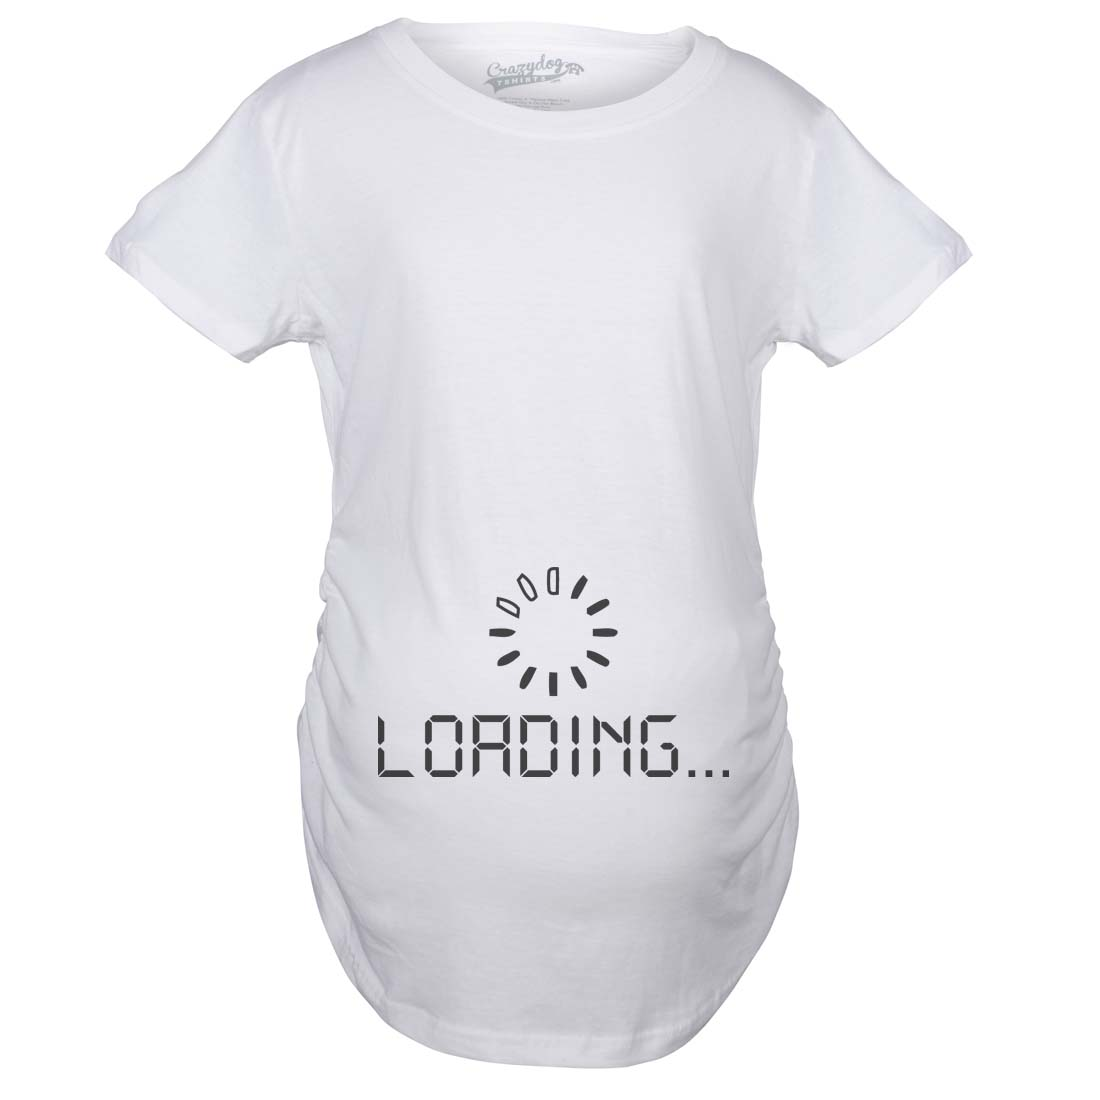 Maternity Baby Loading Shirt Humor Funny Pregnancy Shirts ...